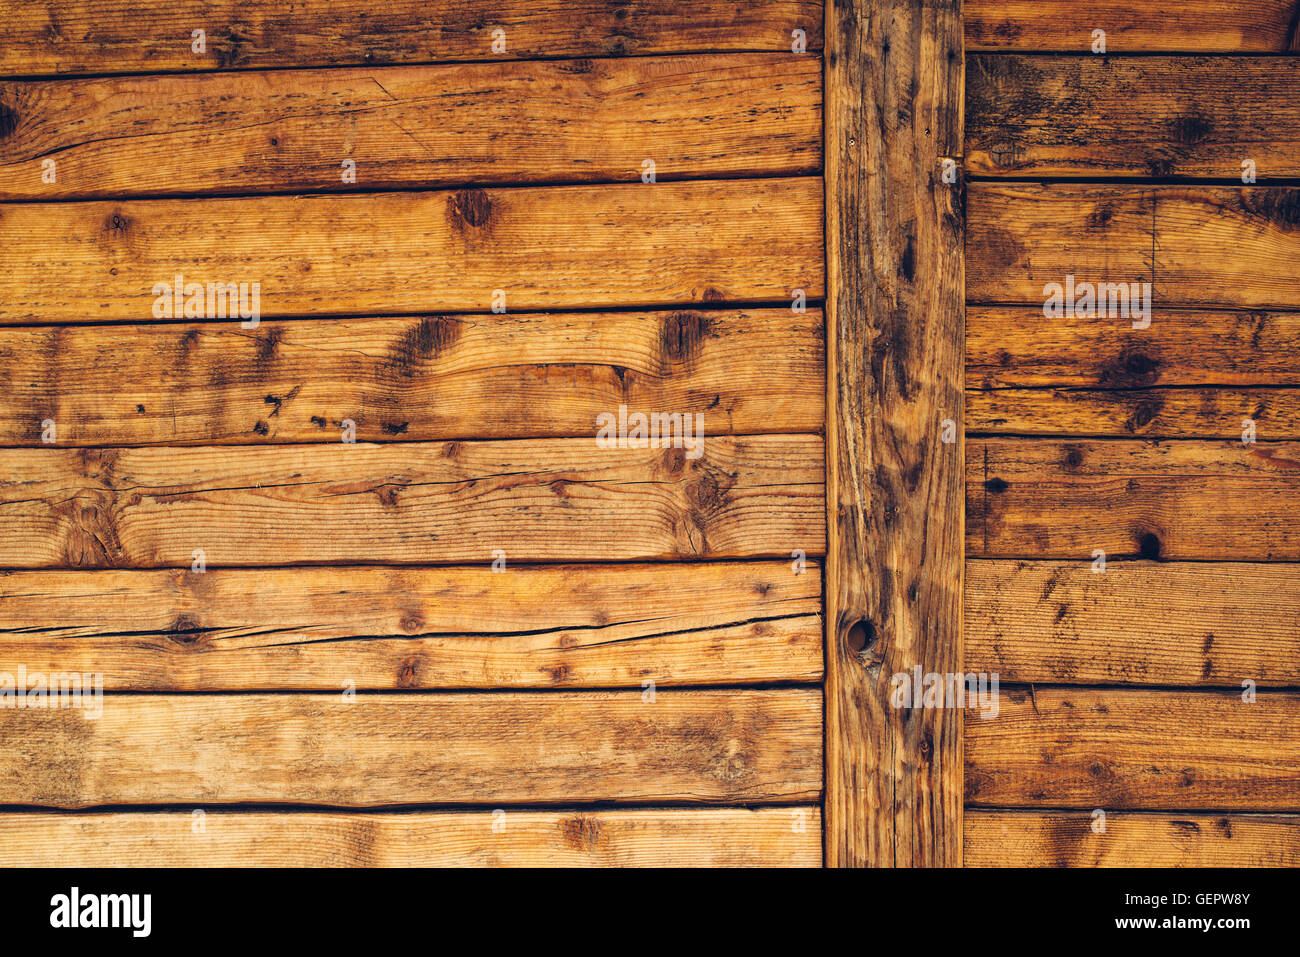 Wooden cabin wall, surface of rustic wood planks - Stock Image